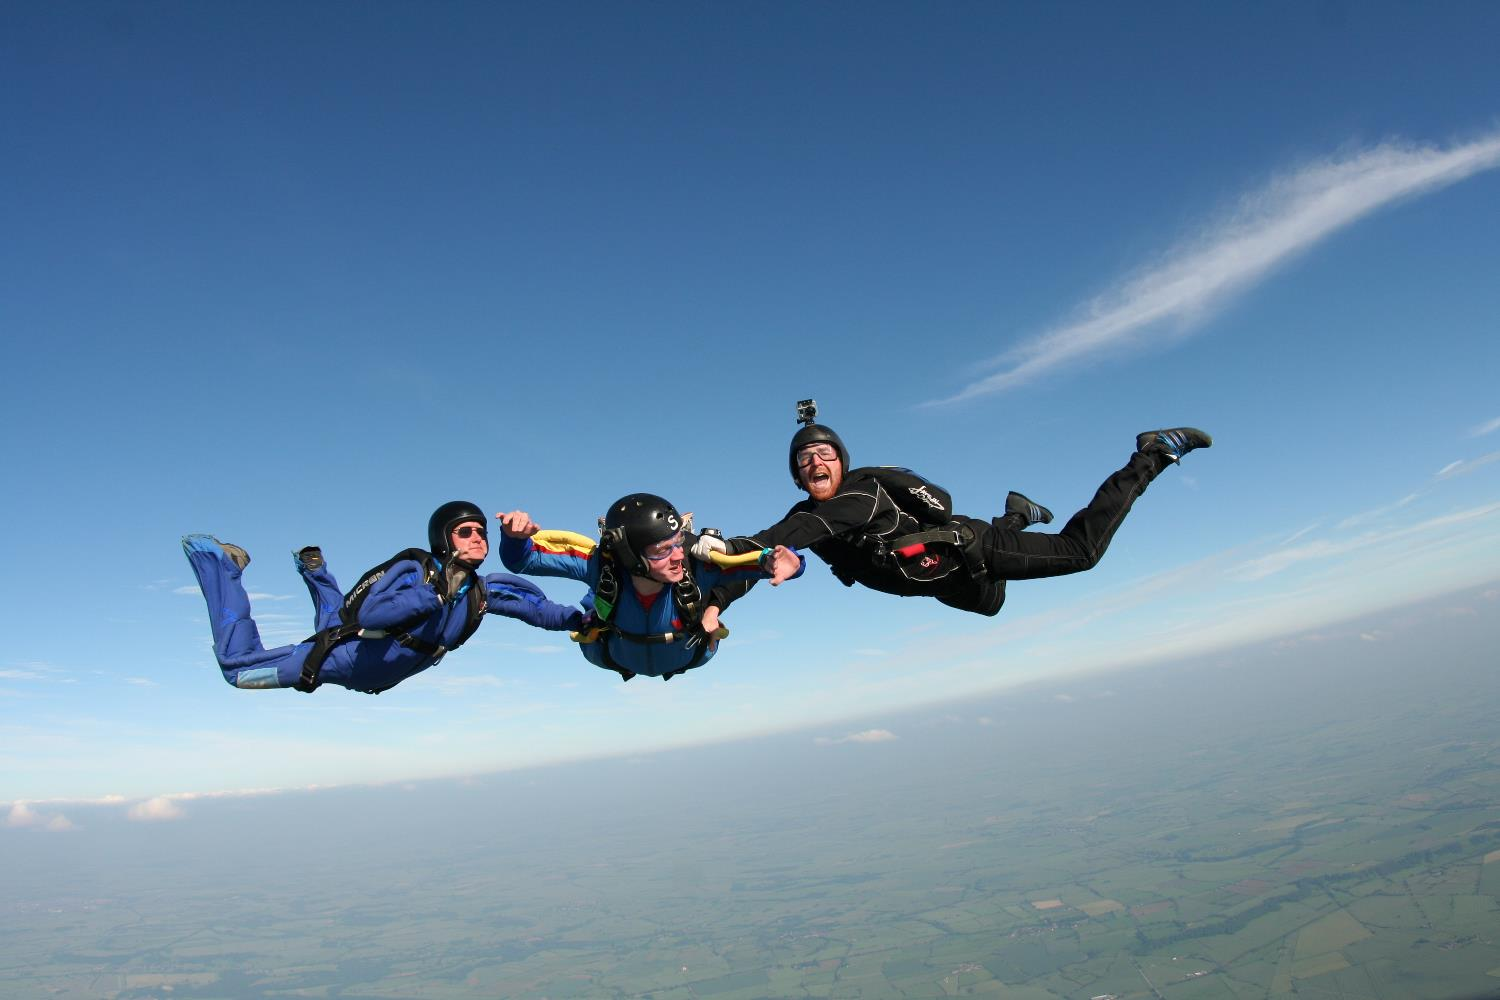 Accelerated freefall - Wikipedia